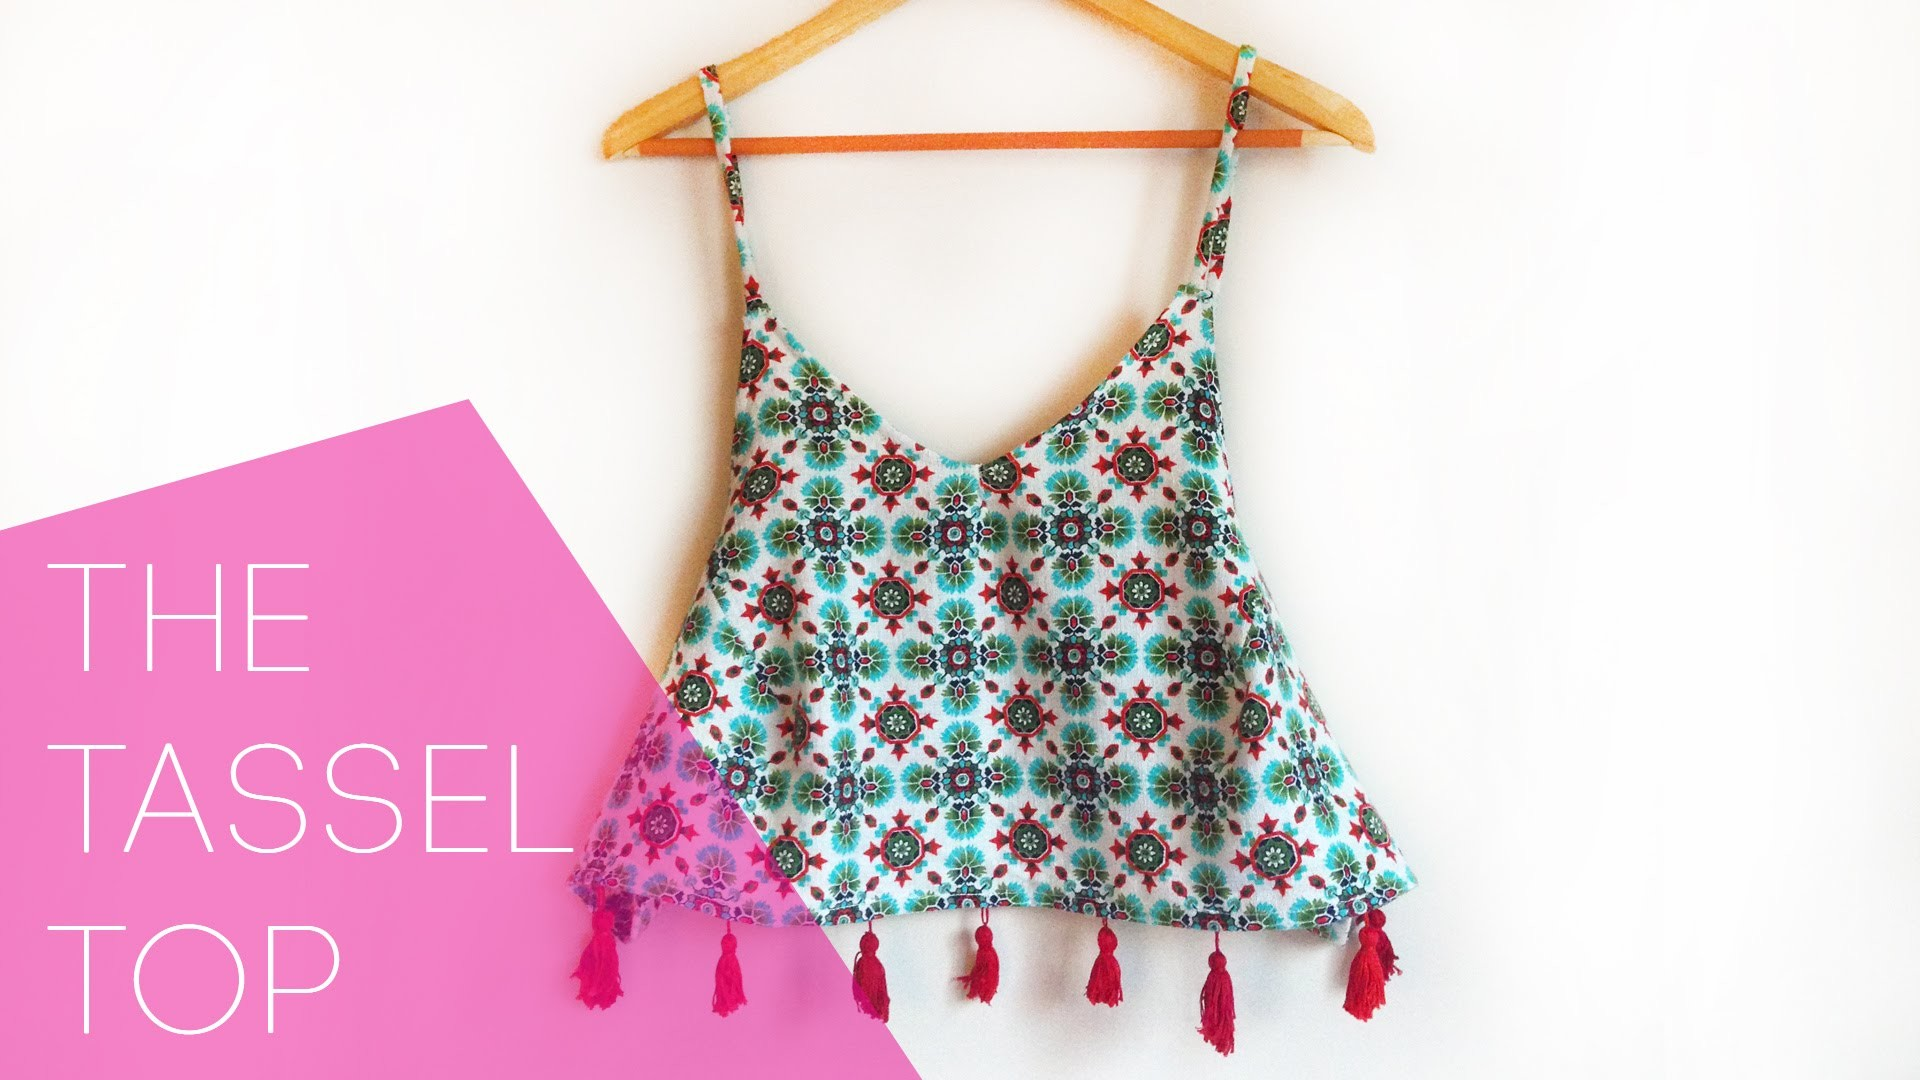 WHATDAYMADE DIY: The Tassel Top